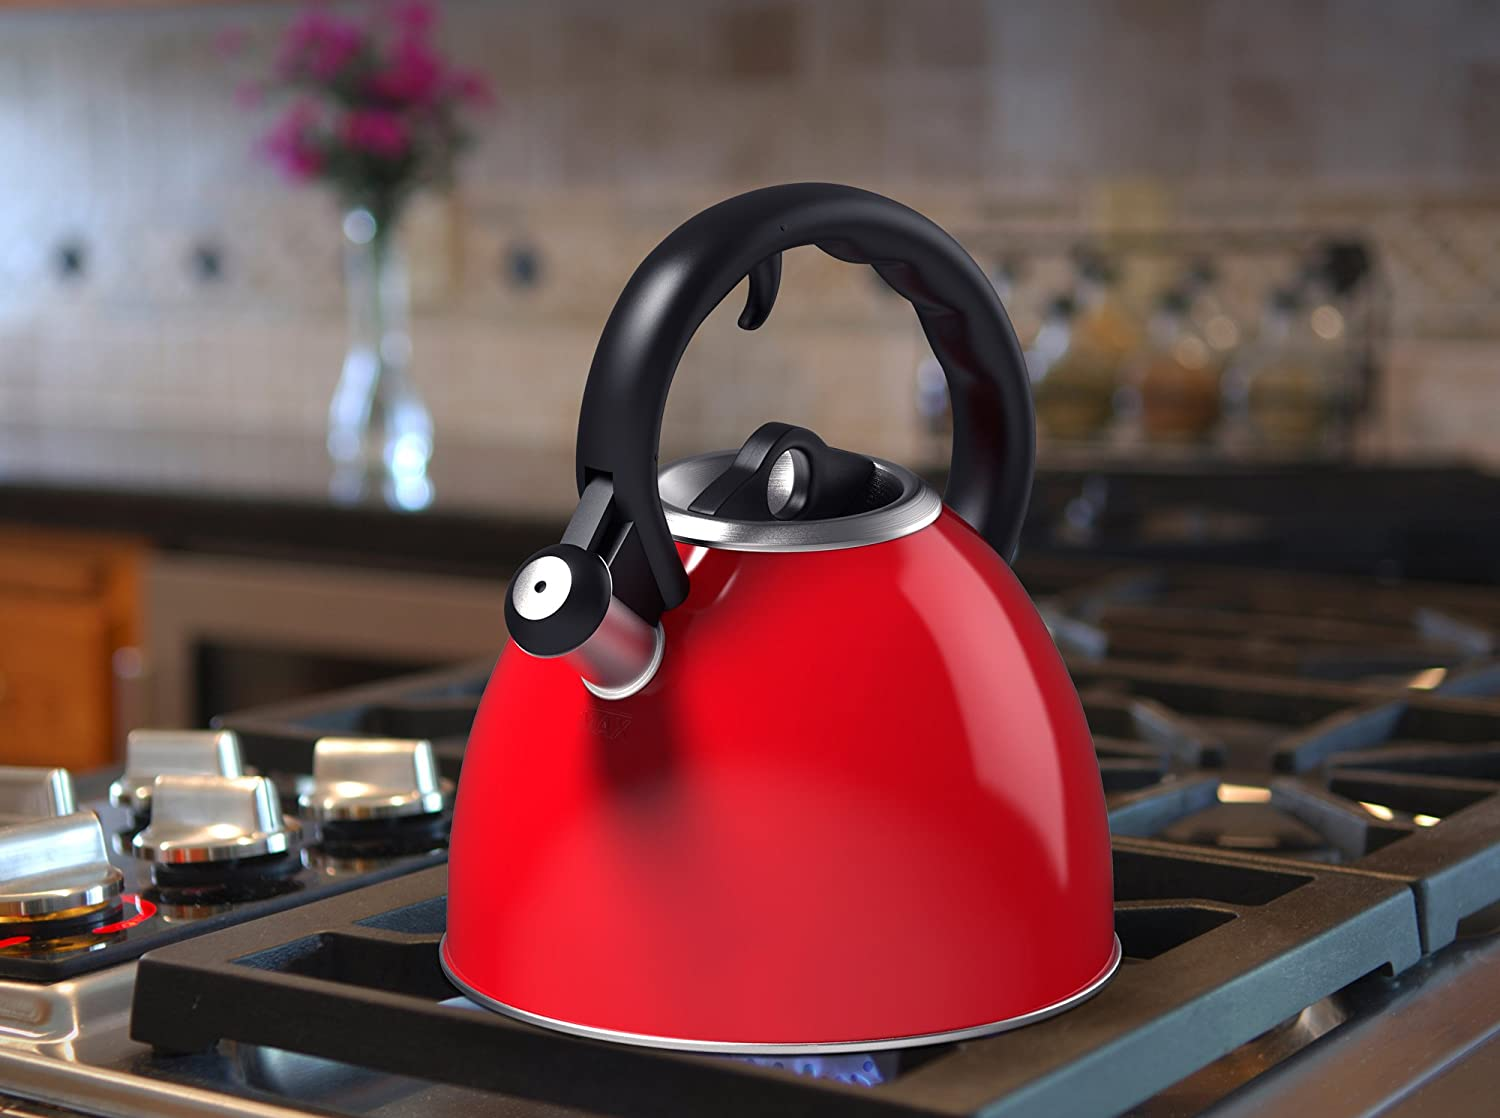 Vremi Whistling Red Tea Kettle - 2 Quart Tea Pot Stainless Steel Tea Kettle for Electric or Gas Stovetop - Cool Cute Modern Tea Kettle Stovetop Teapot Hot Water Whistle